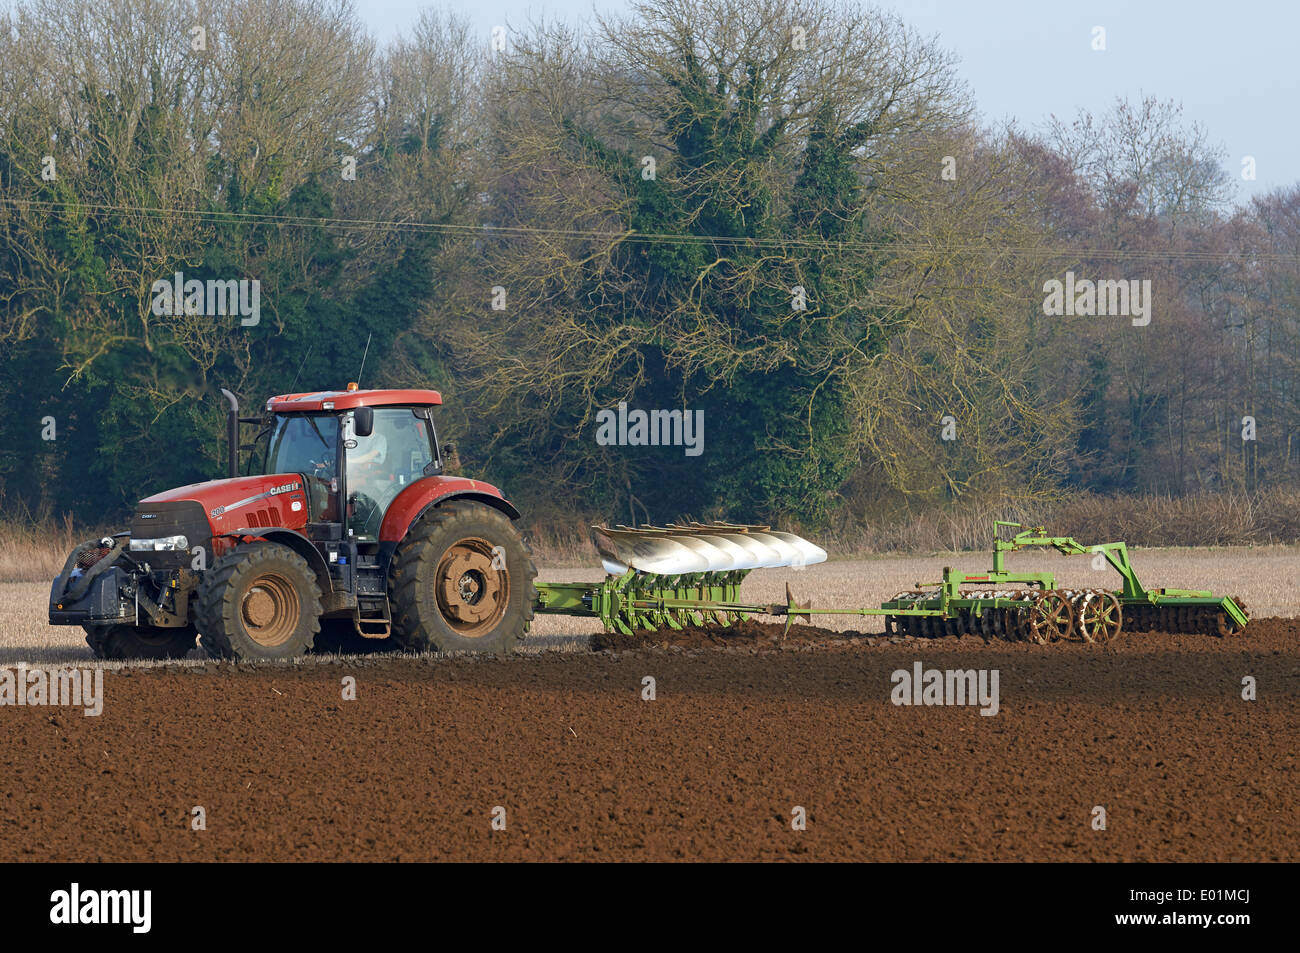 Tractor ploughing with a farrow press attachment - Stock Image